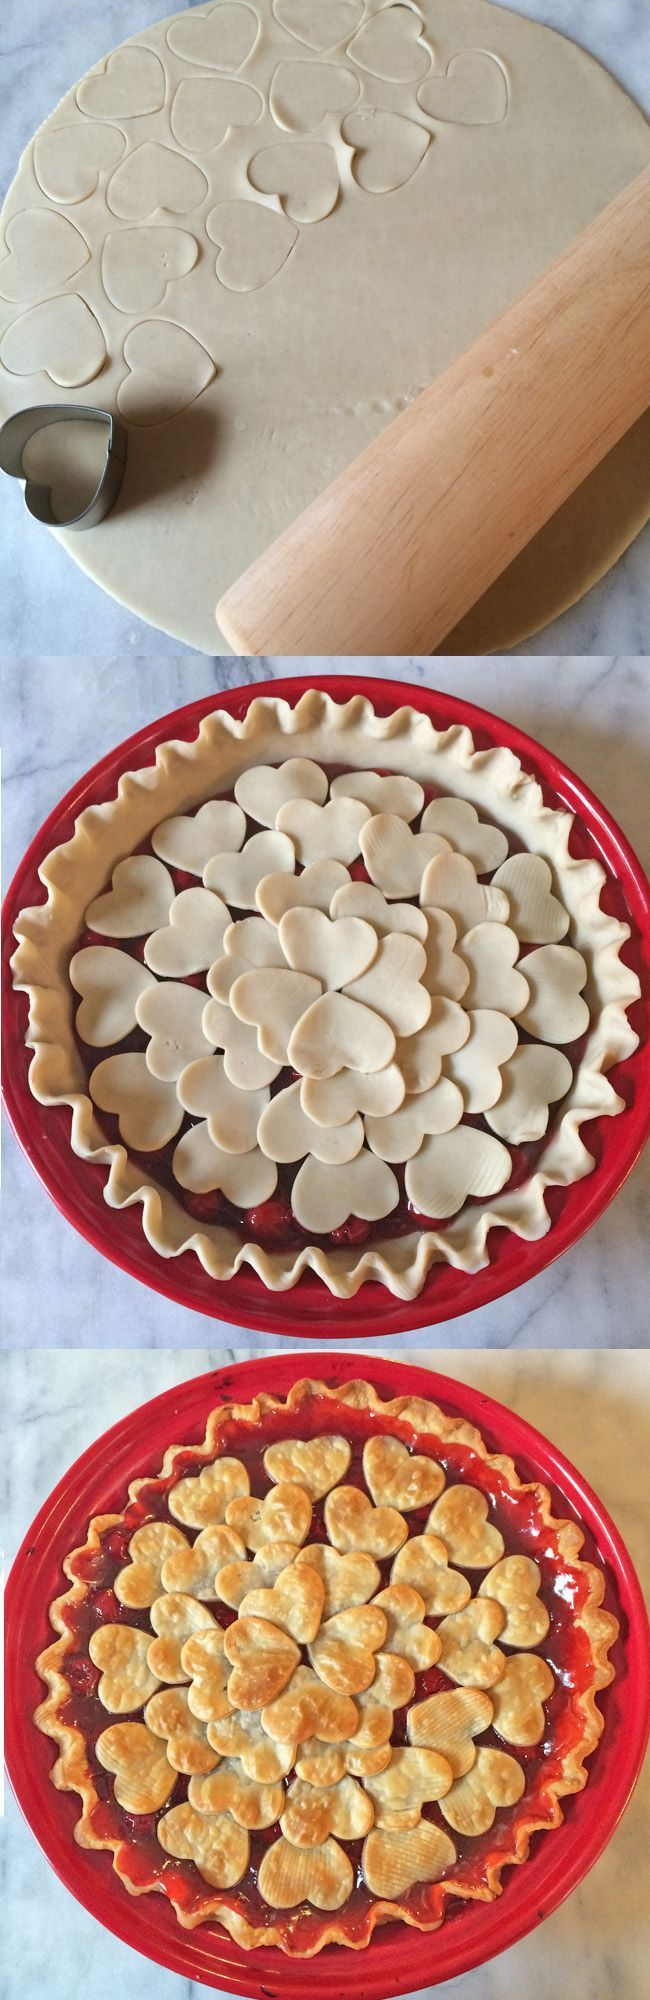 Heart pie! Click through for 35 amazing, over-the-top Valentines Day ideas, including Valentines crafts, Valentines recipes, and